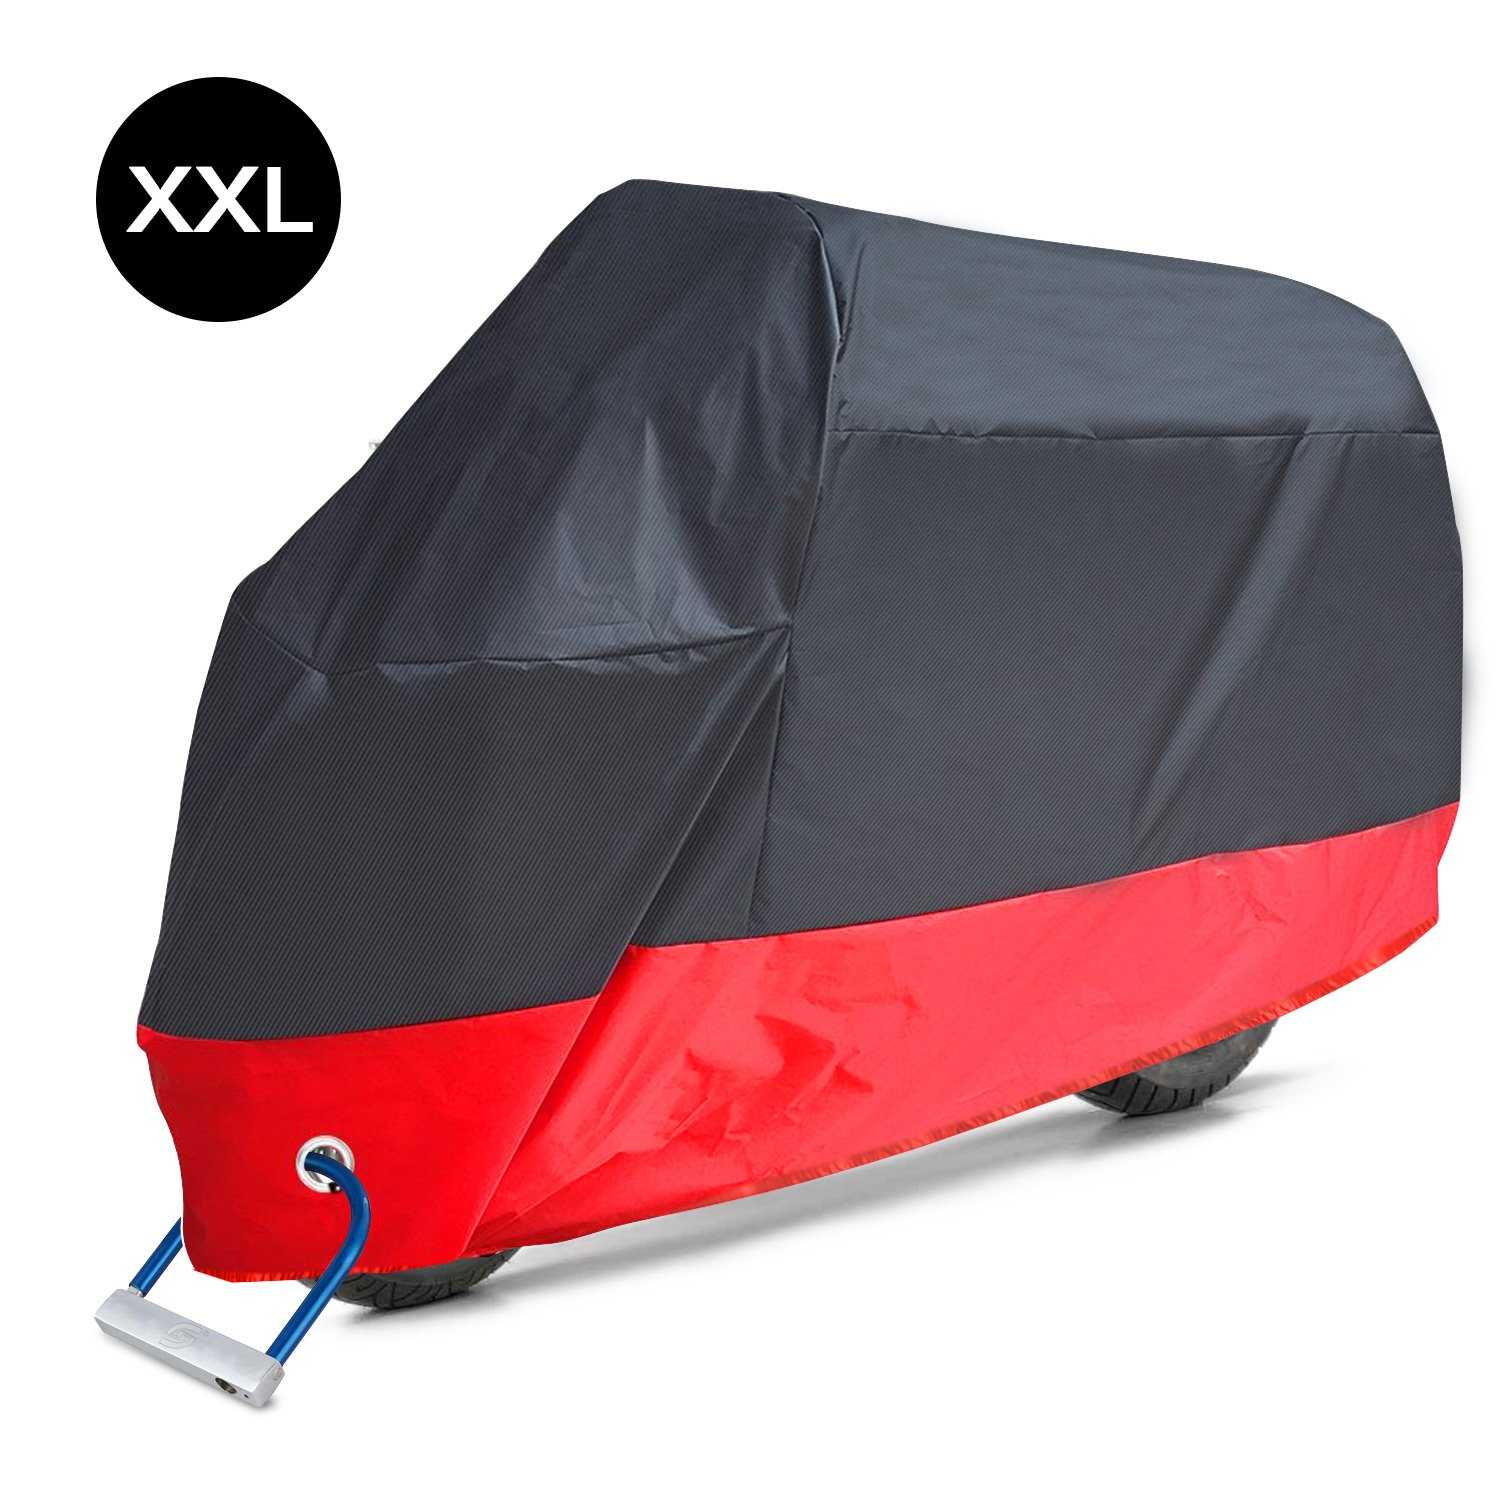 AOAFUN Motorcycle Cover, All Season Waterproof Outdoor Protection,2 Stainless Steel Lock-Holes Design, Fits up to 108'' Motors ,Waterproof ,Anti-Theft, Durable & Tear Proof(XXL,Black& Red)